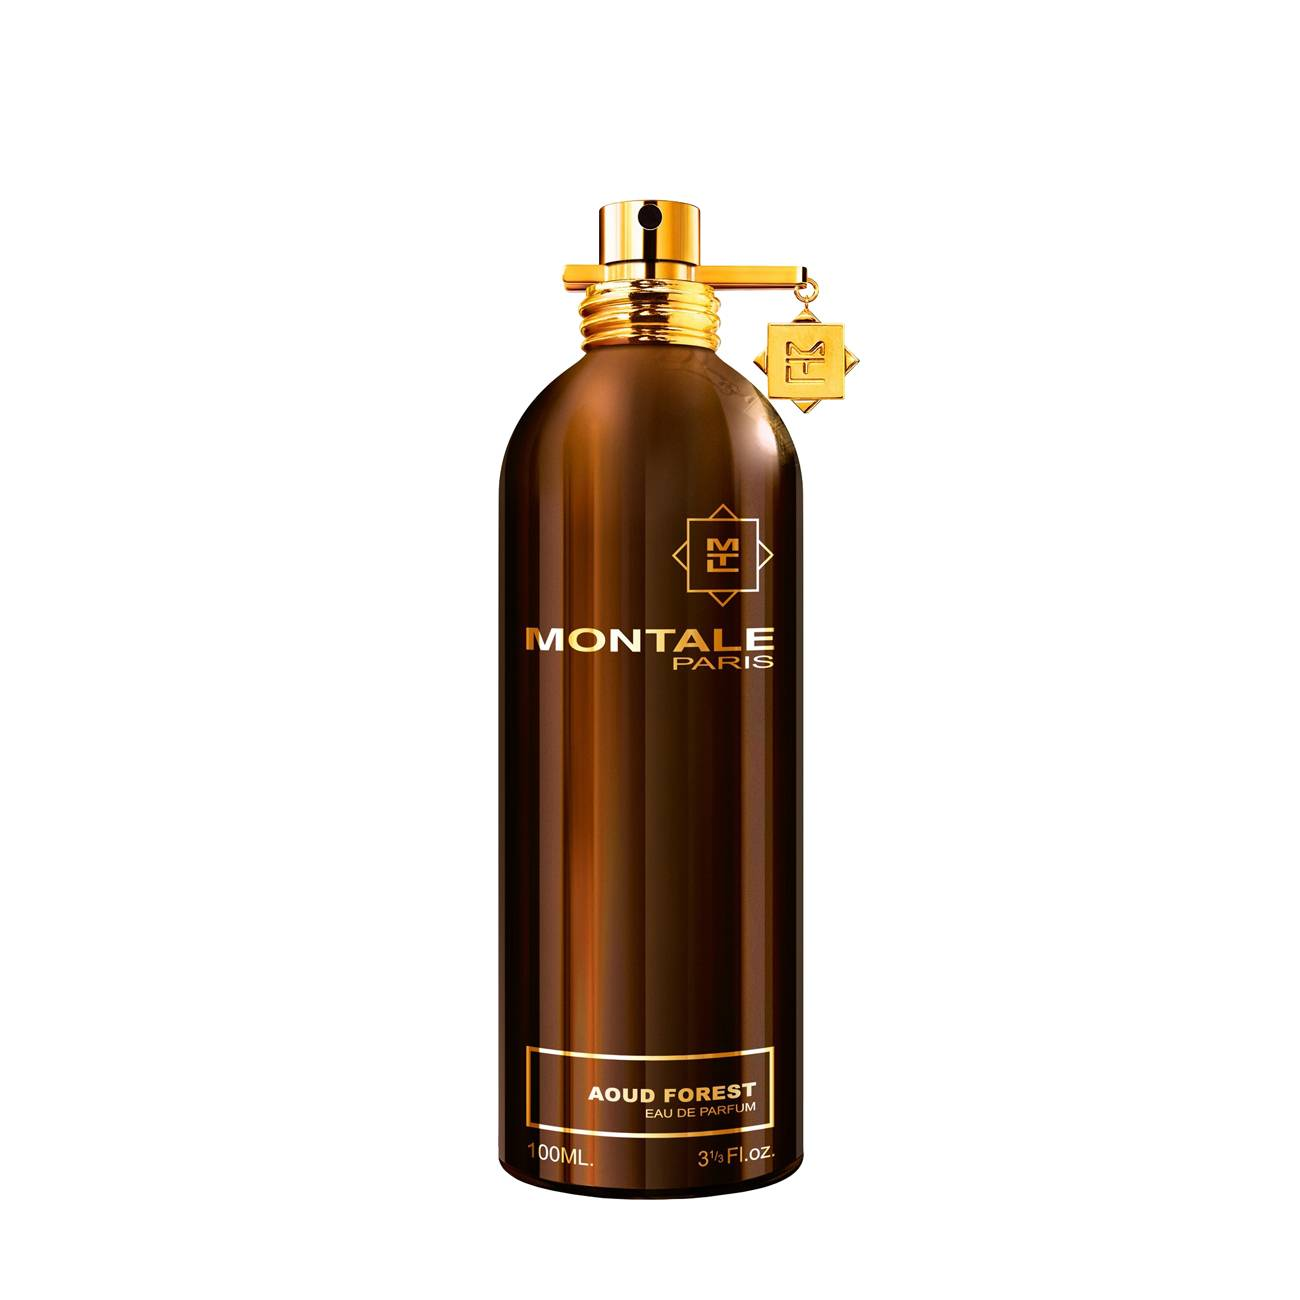 Aoud Forest 100ml